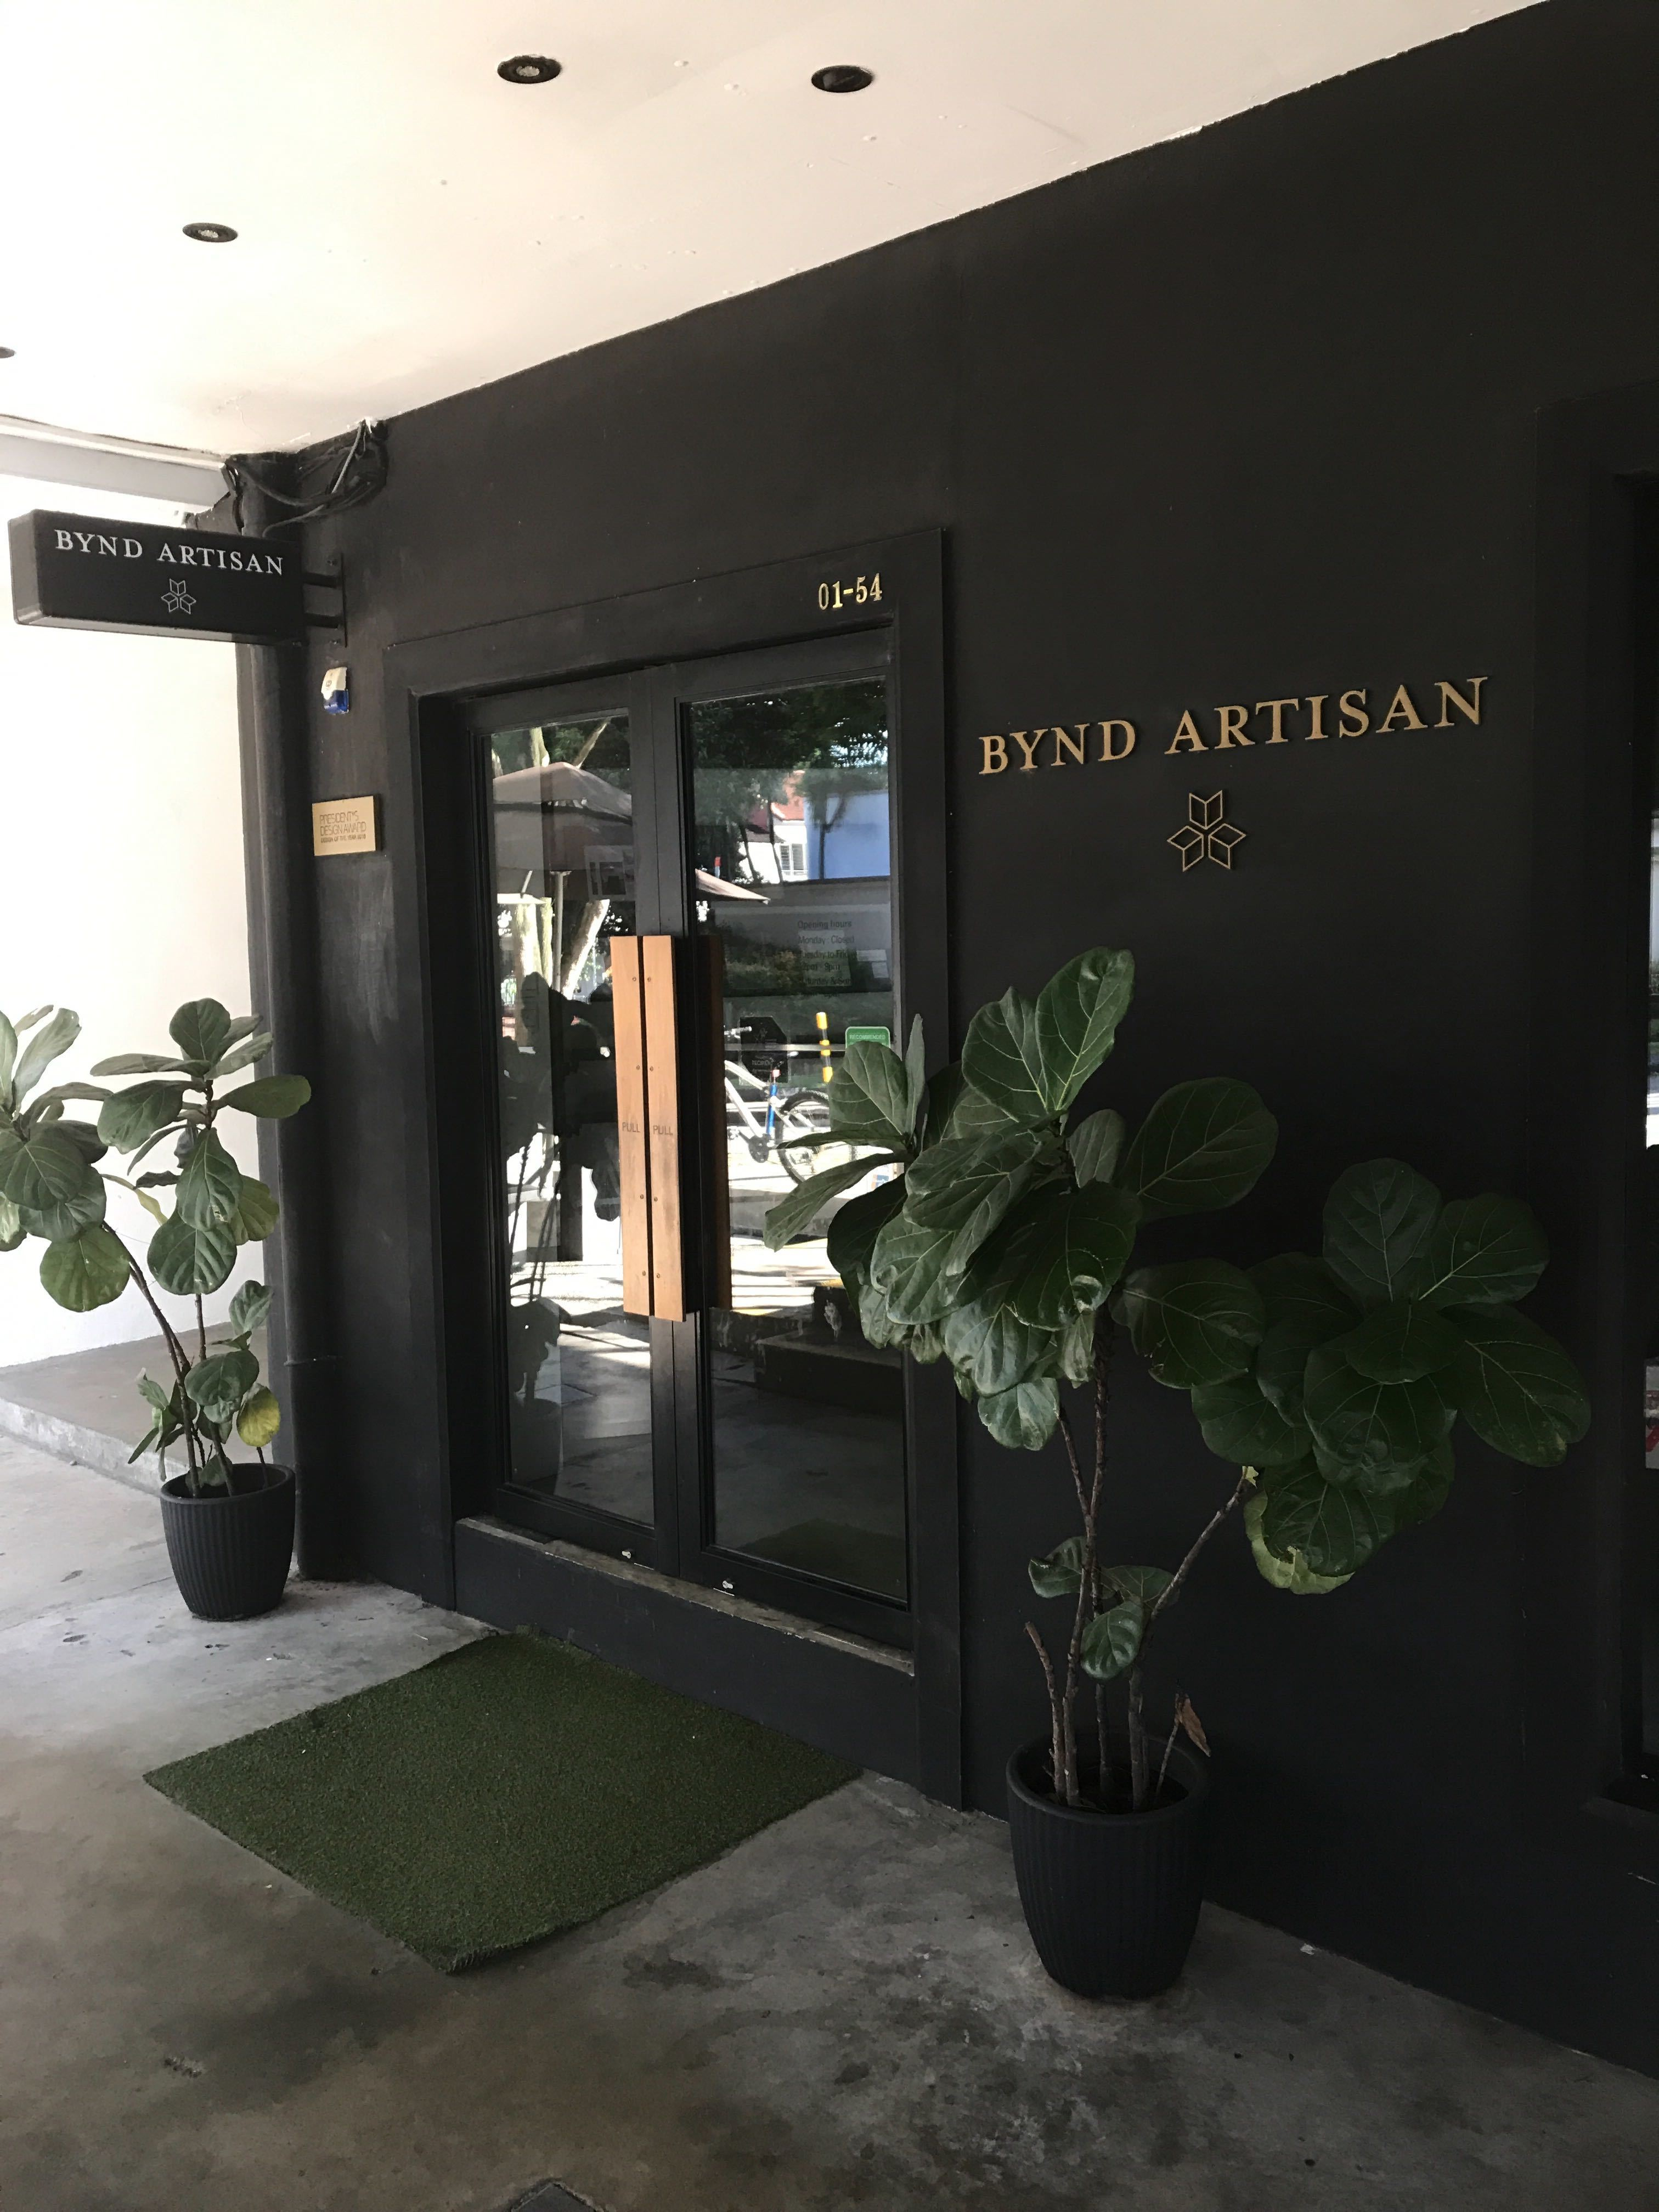 Bynd Artisan's store front is designed with a touch of class.